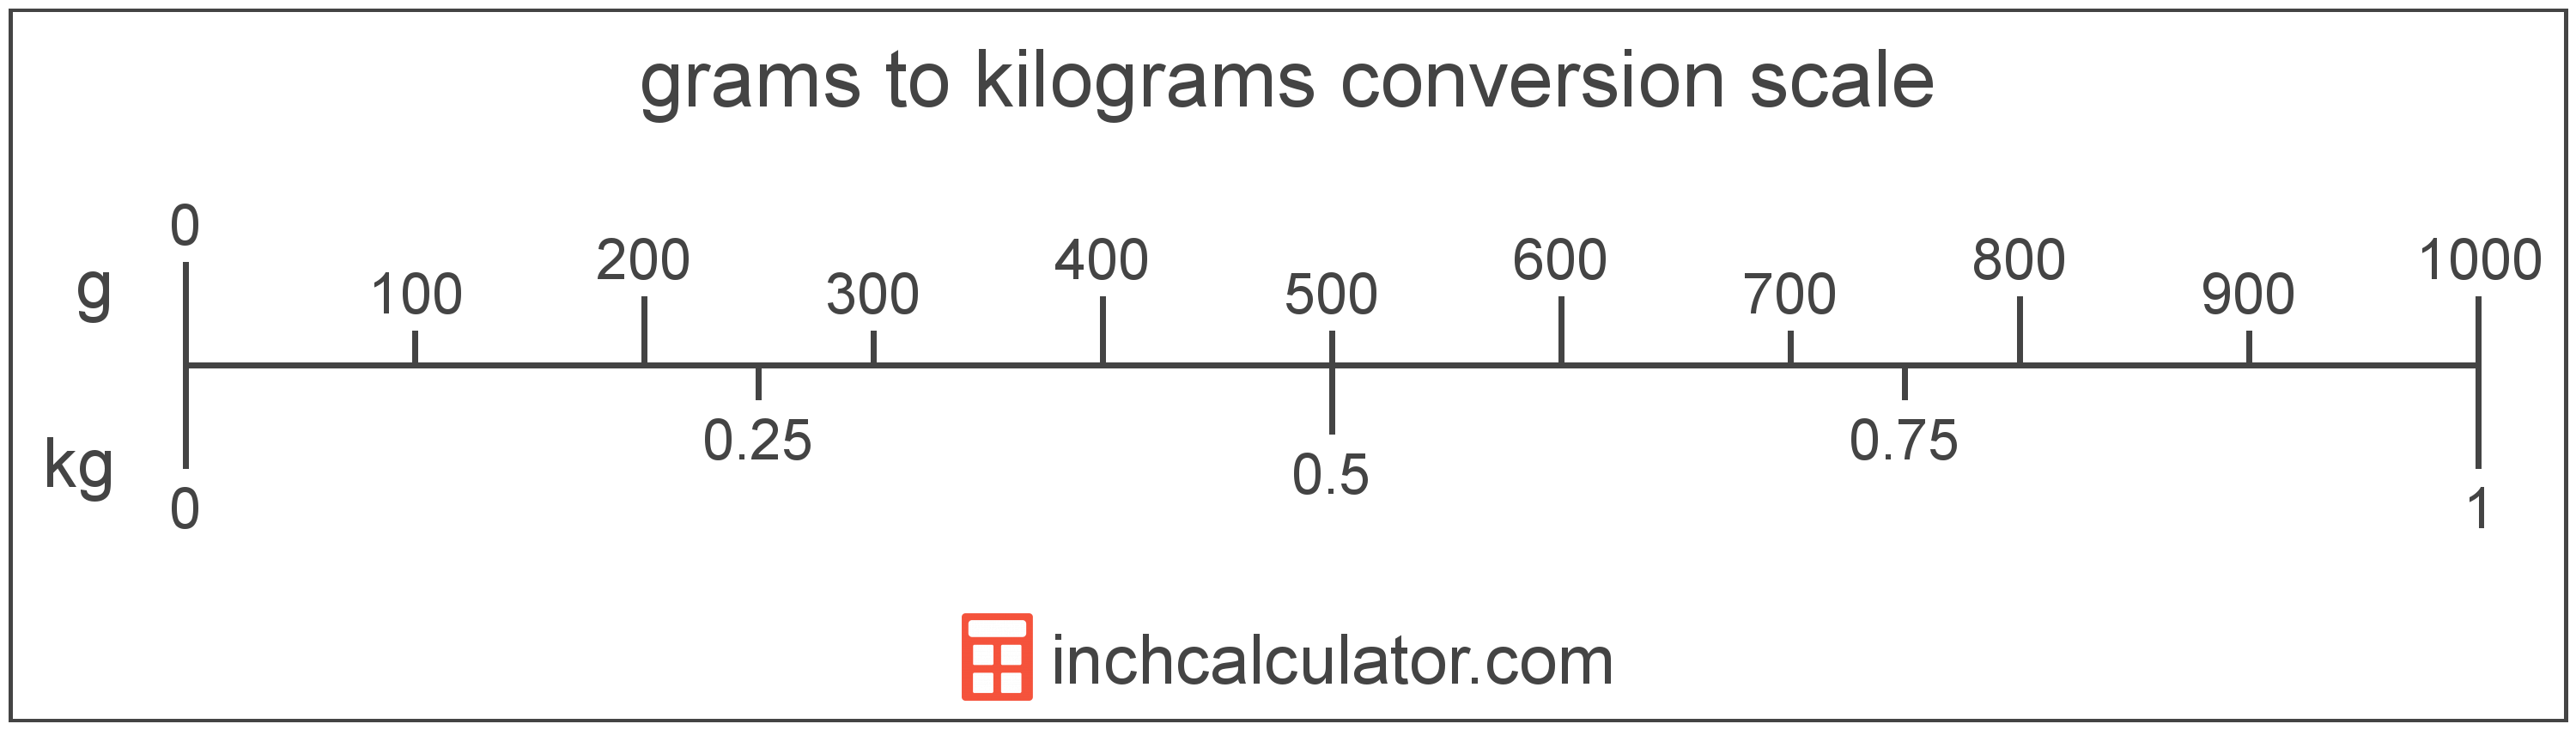 Convert Grams to Kilograms - (g to kg) - Inch Calculator